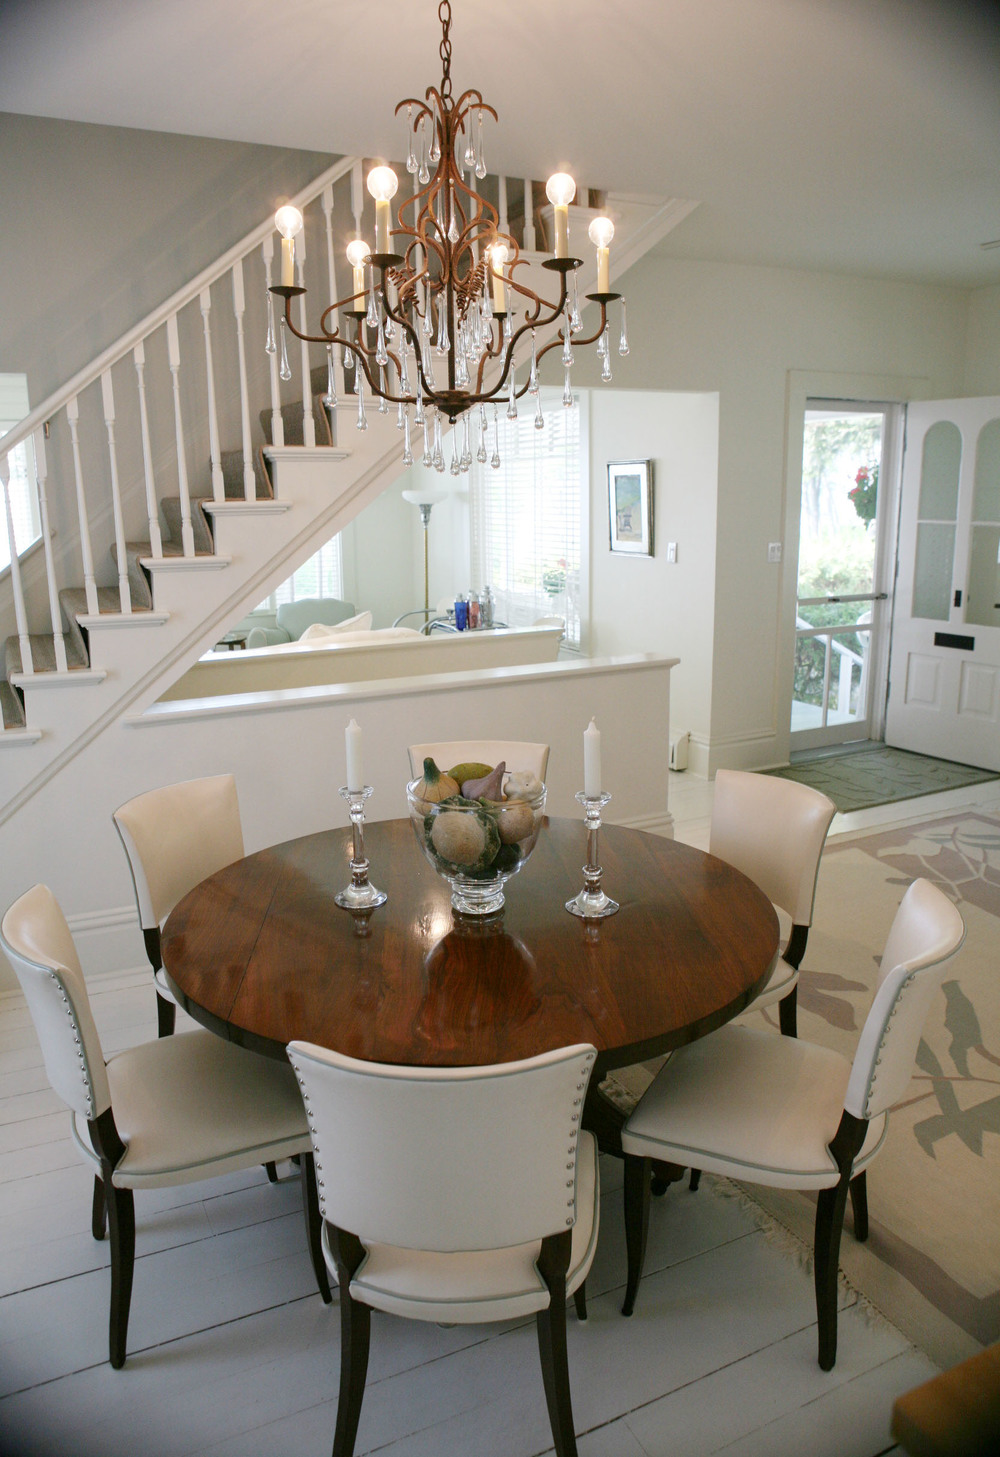 Petoskey-cottage-dining-room